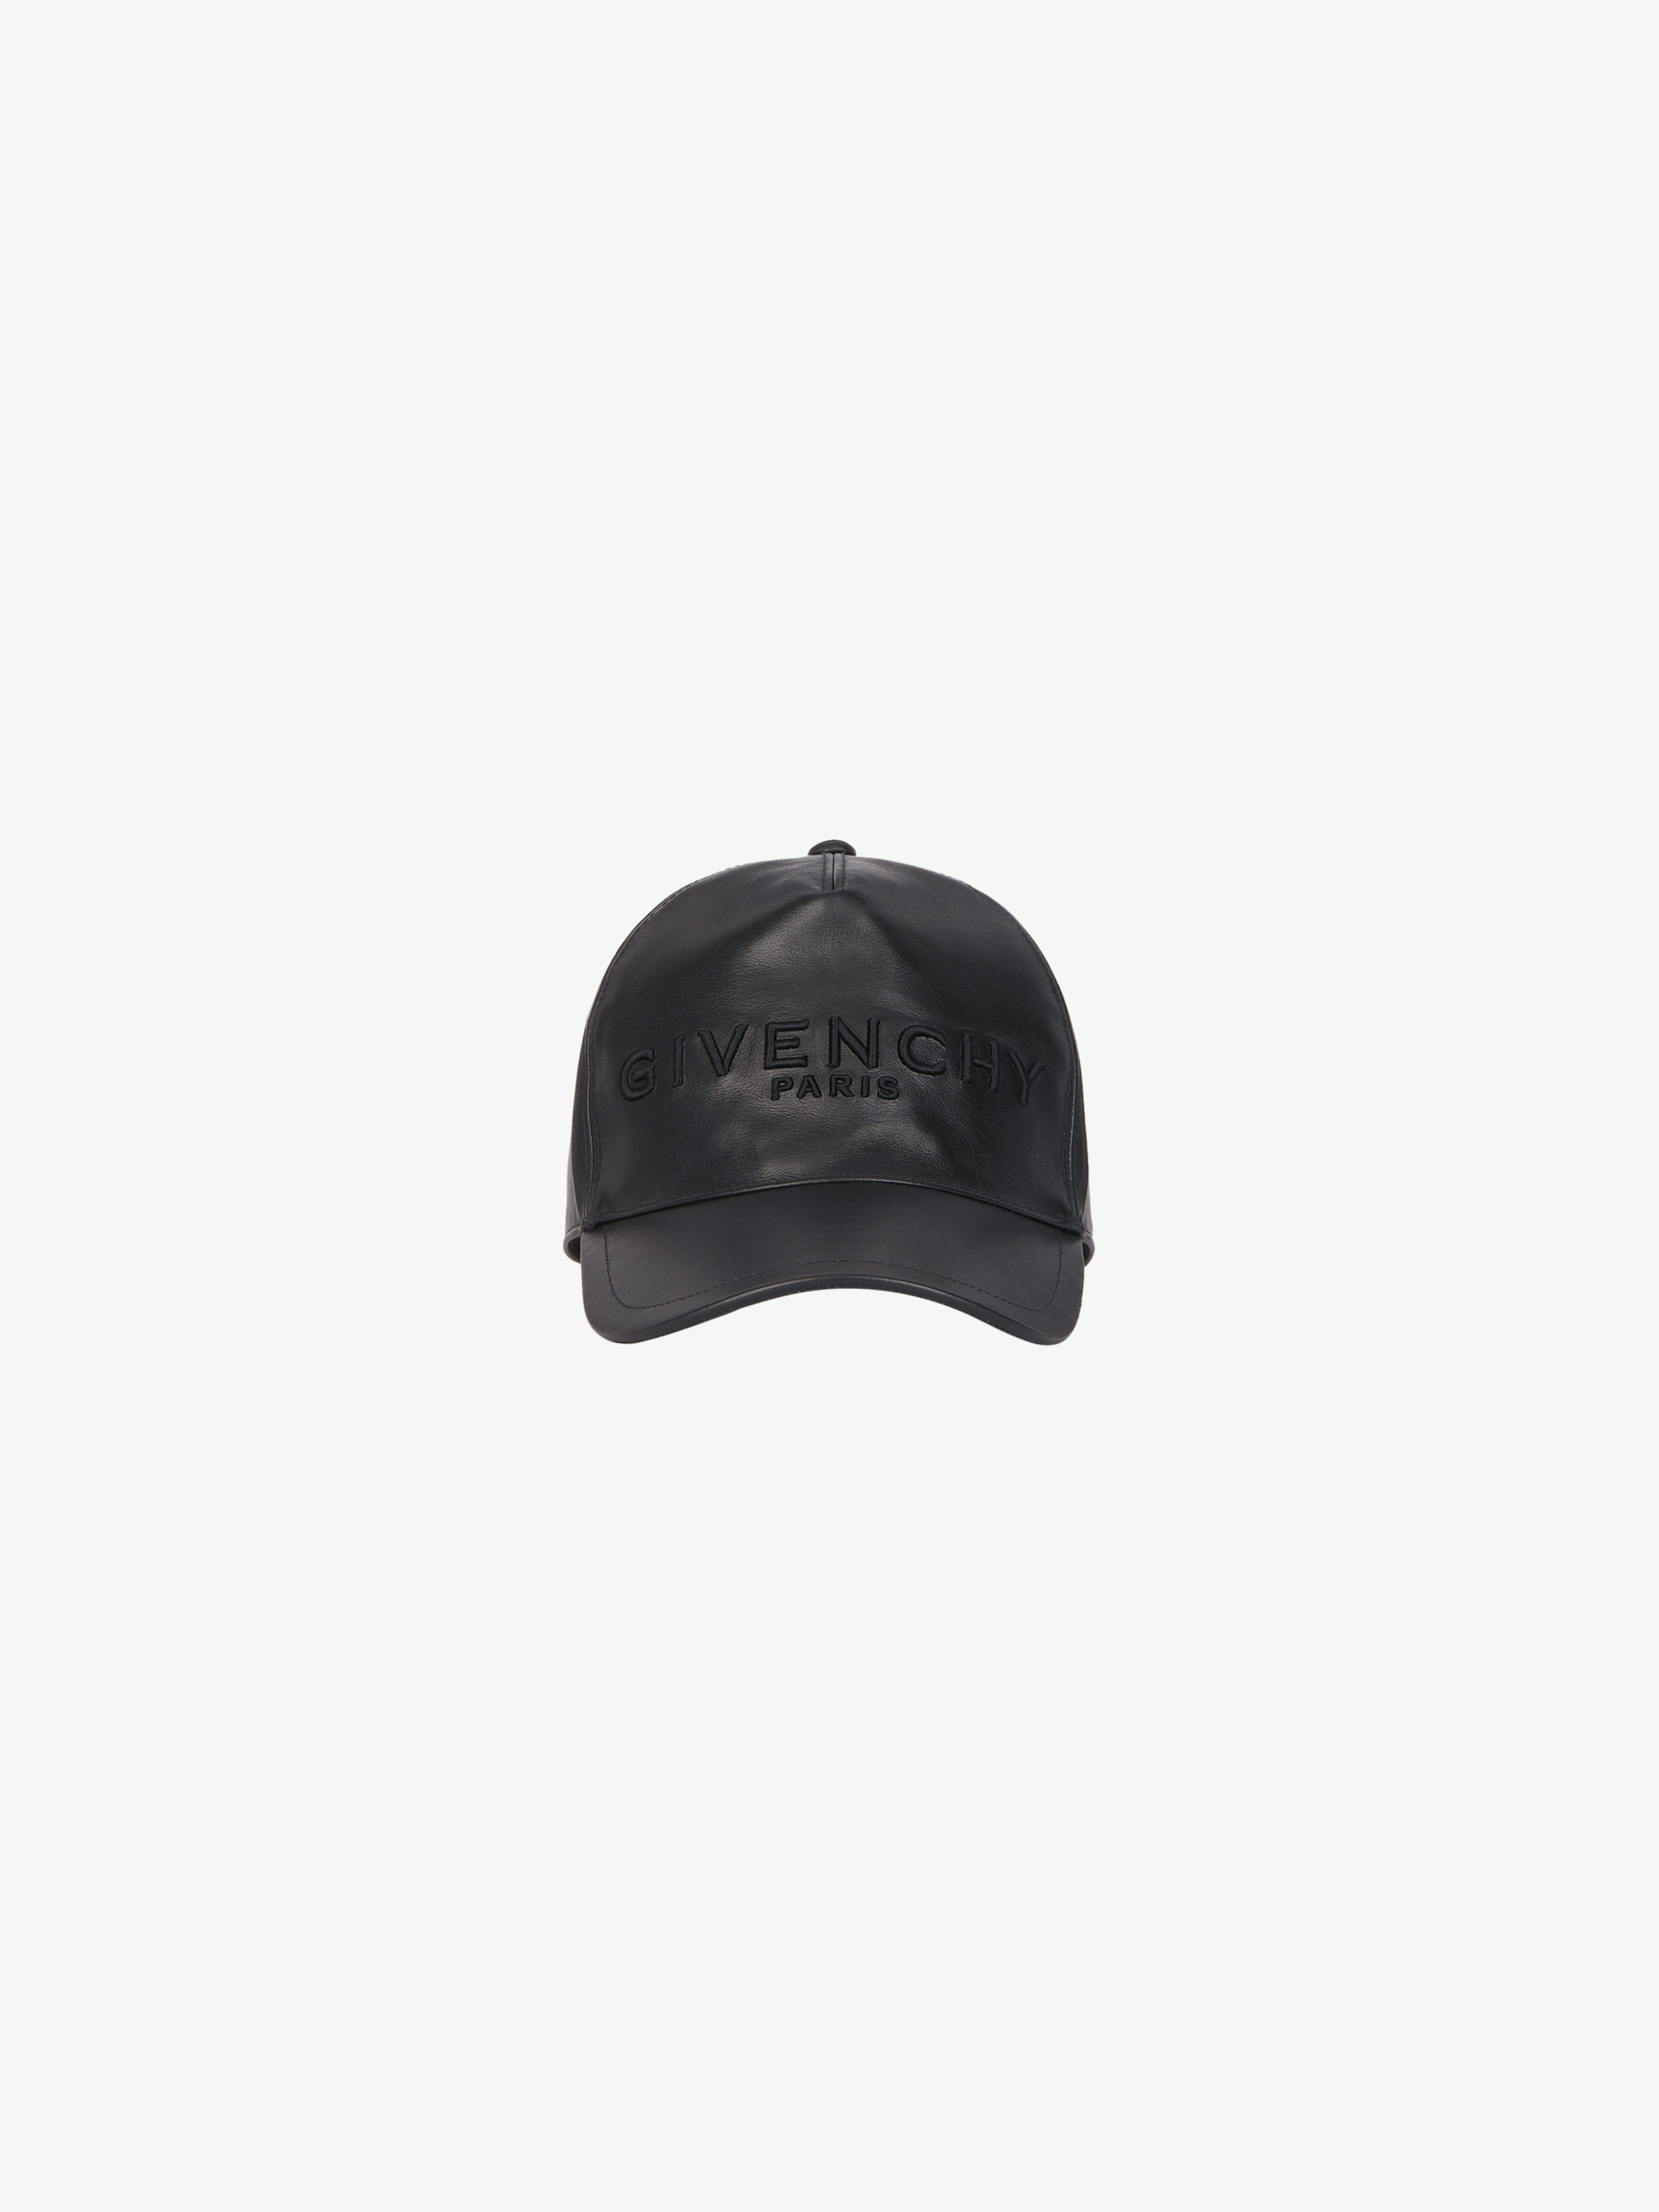 GIVENCHY PARIS embroidered cap in leather